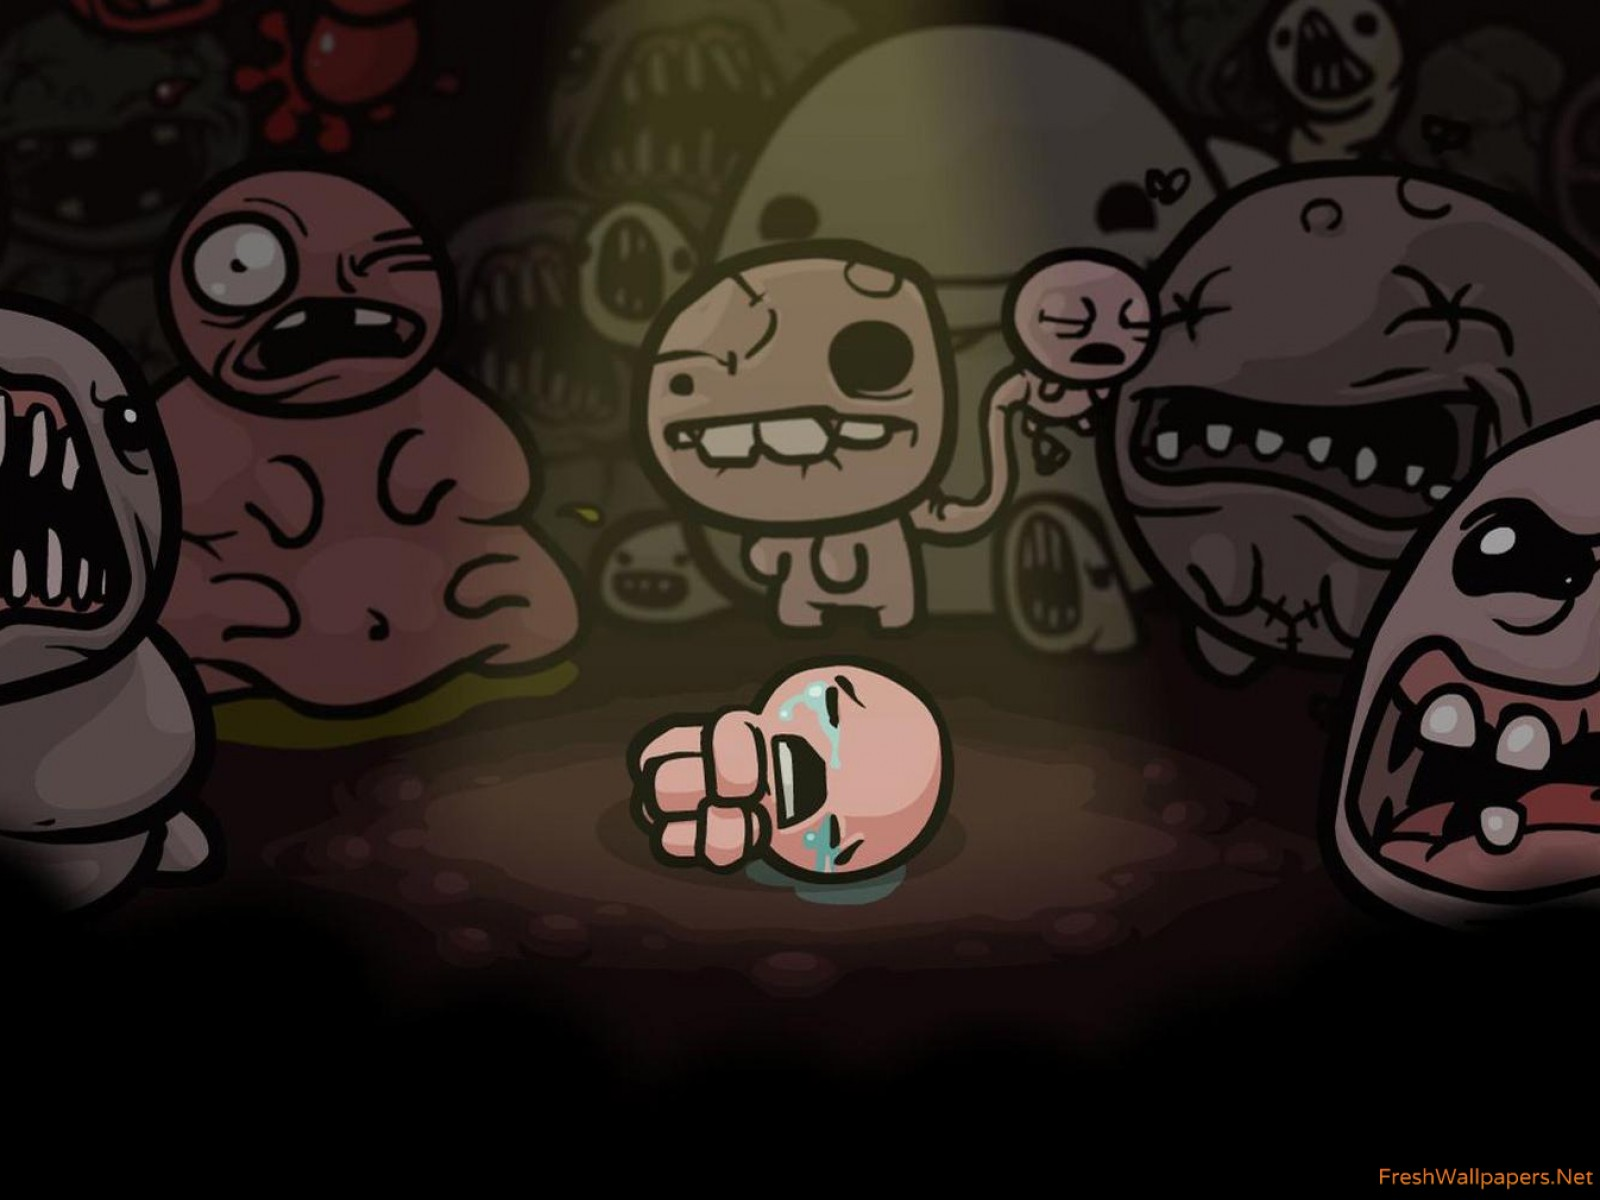 The Binding of Isaac wallpapers Freshwallpapers 1600x1200